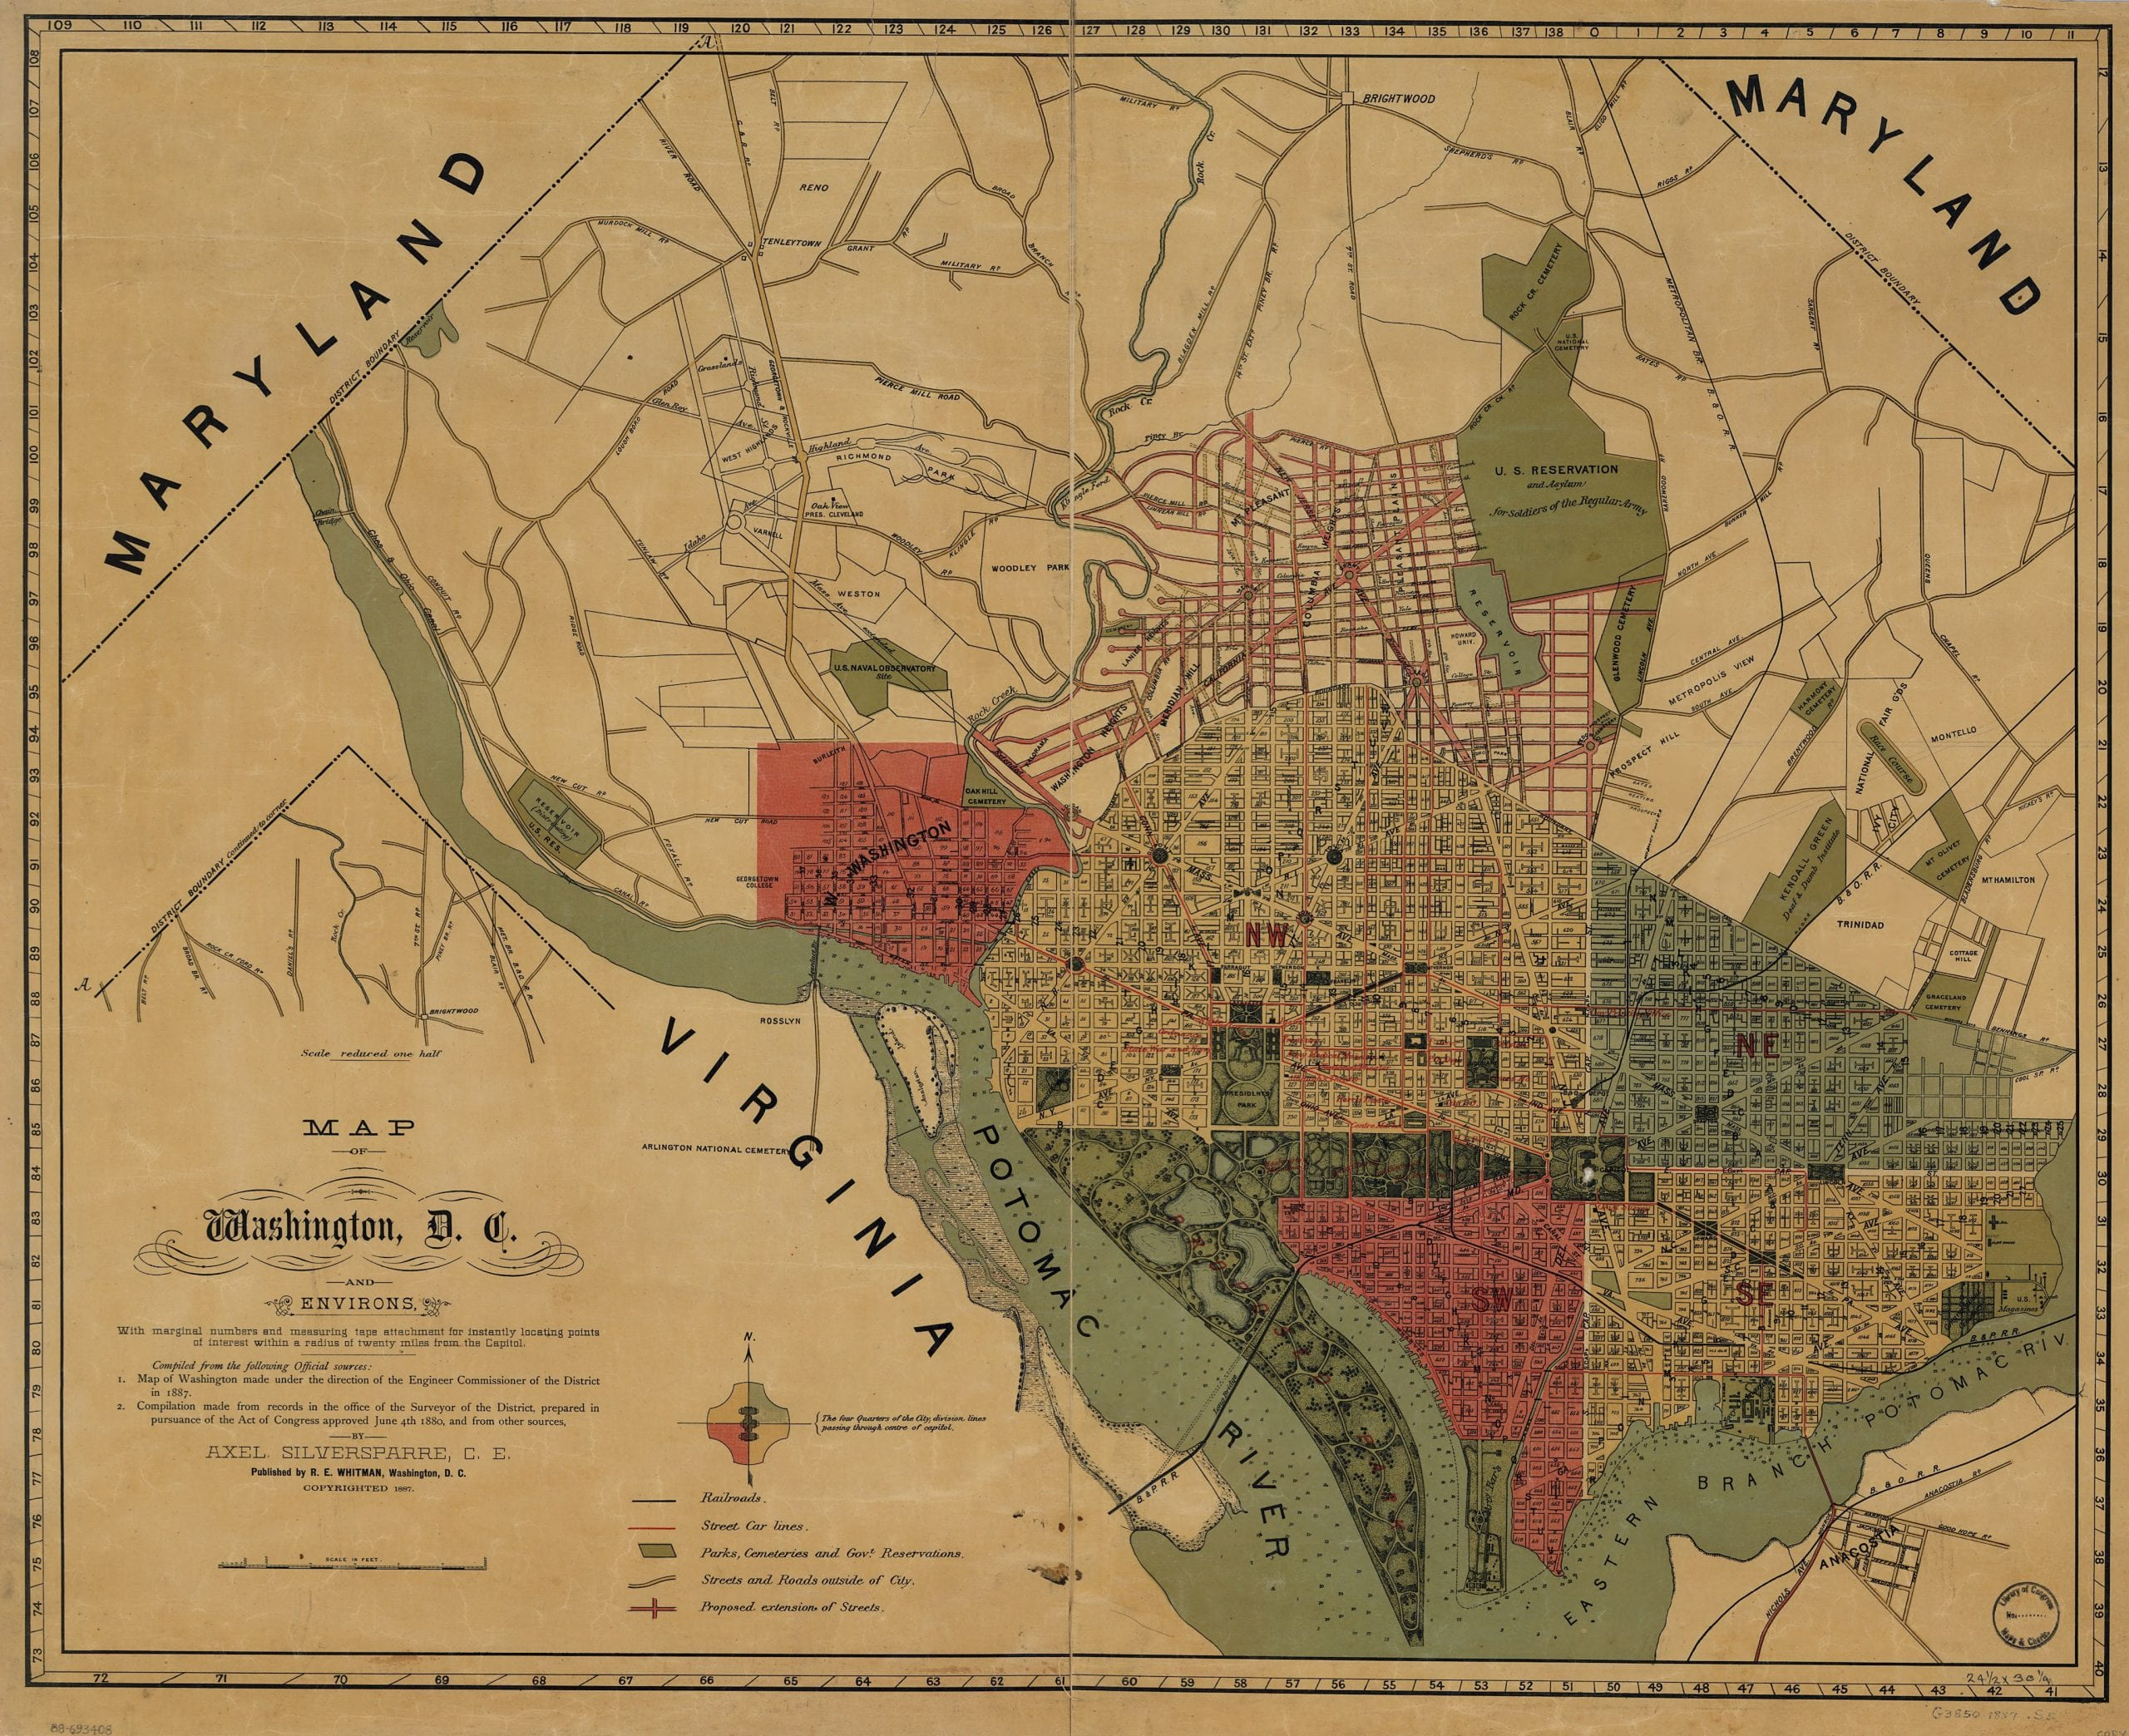 Map of Washington, D.C., and environs : with marginal numbers and measuring tape attachment for instantly locating points of interest within a radius of twenty miles from the Capitol /